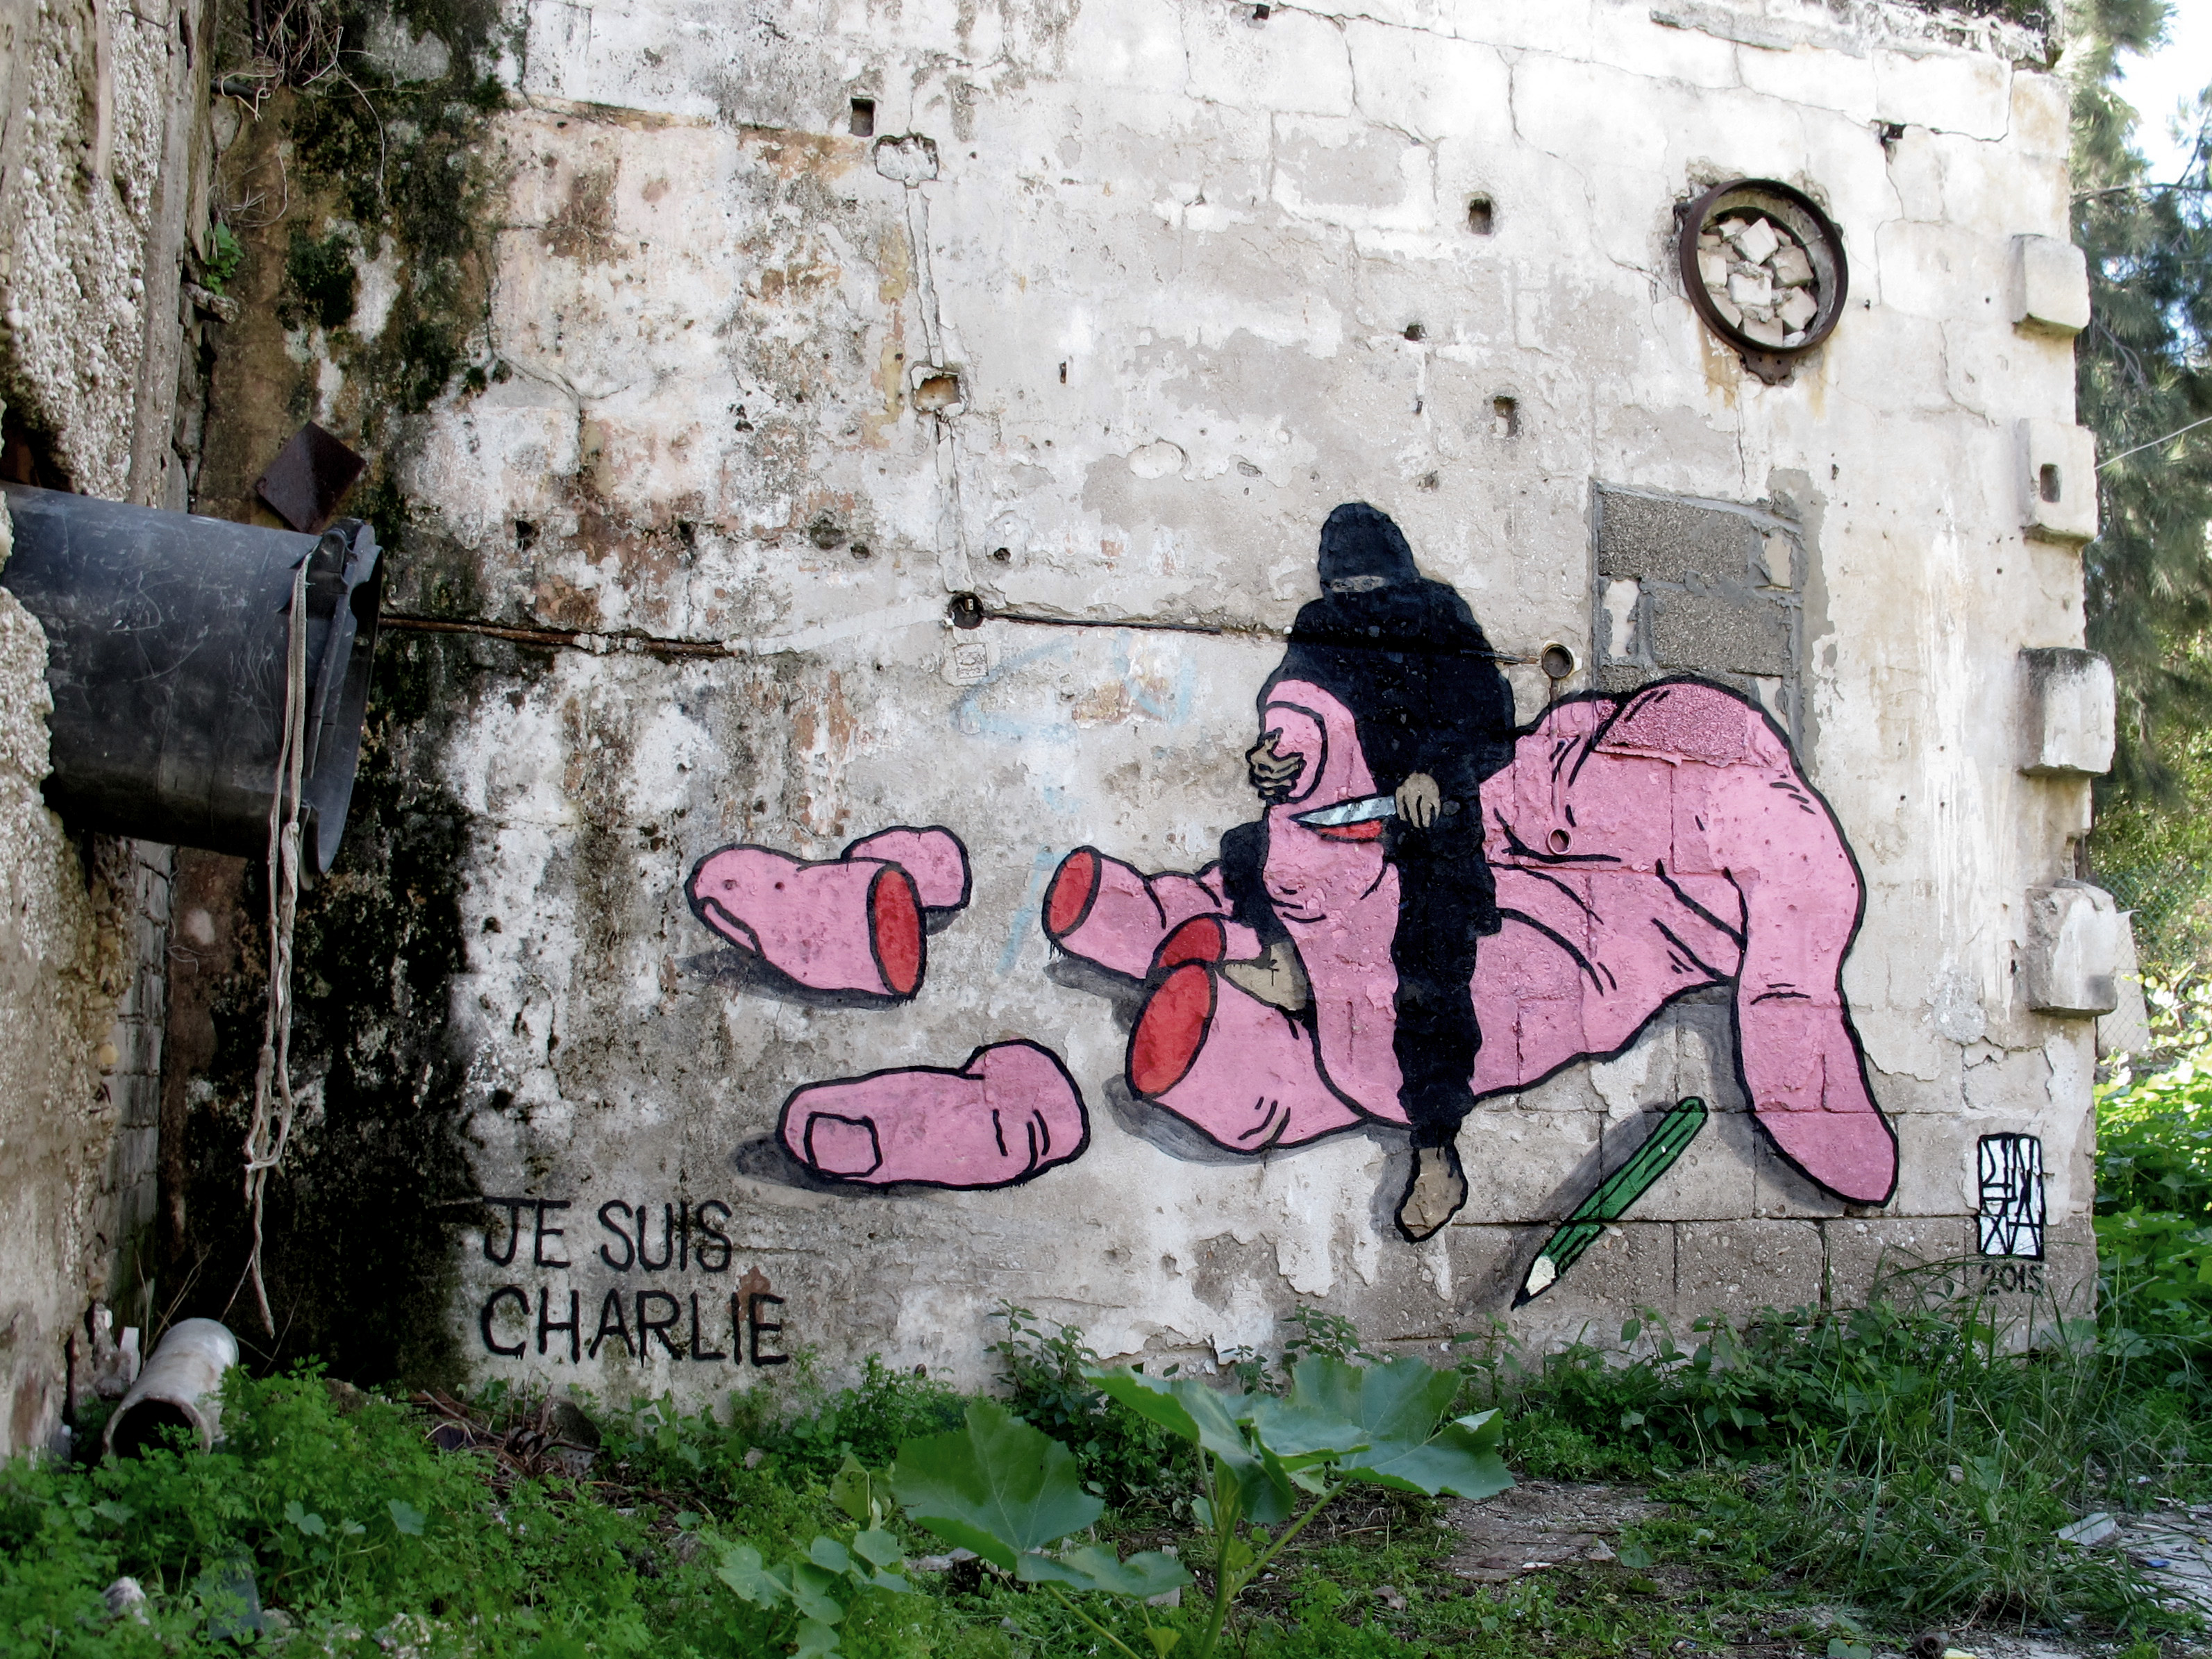 broken fingaz jesuischarlie isis graffiti israel middle east unga street art